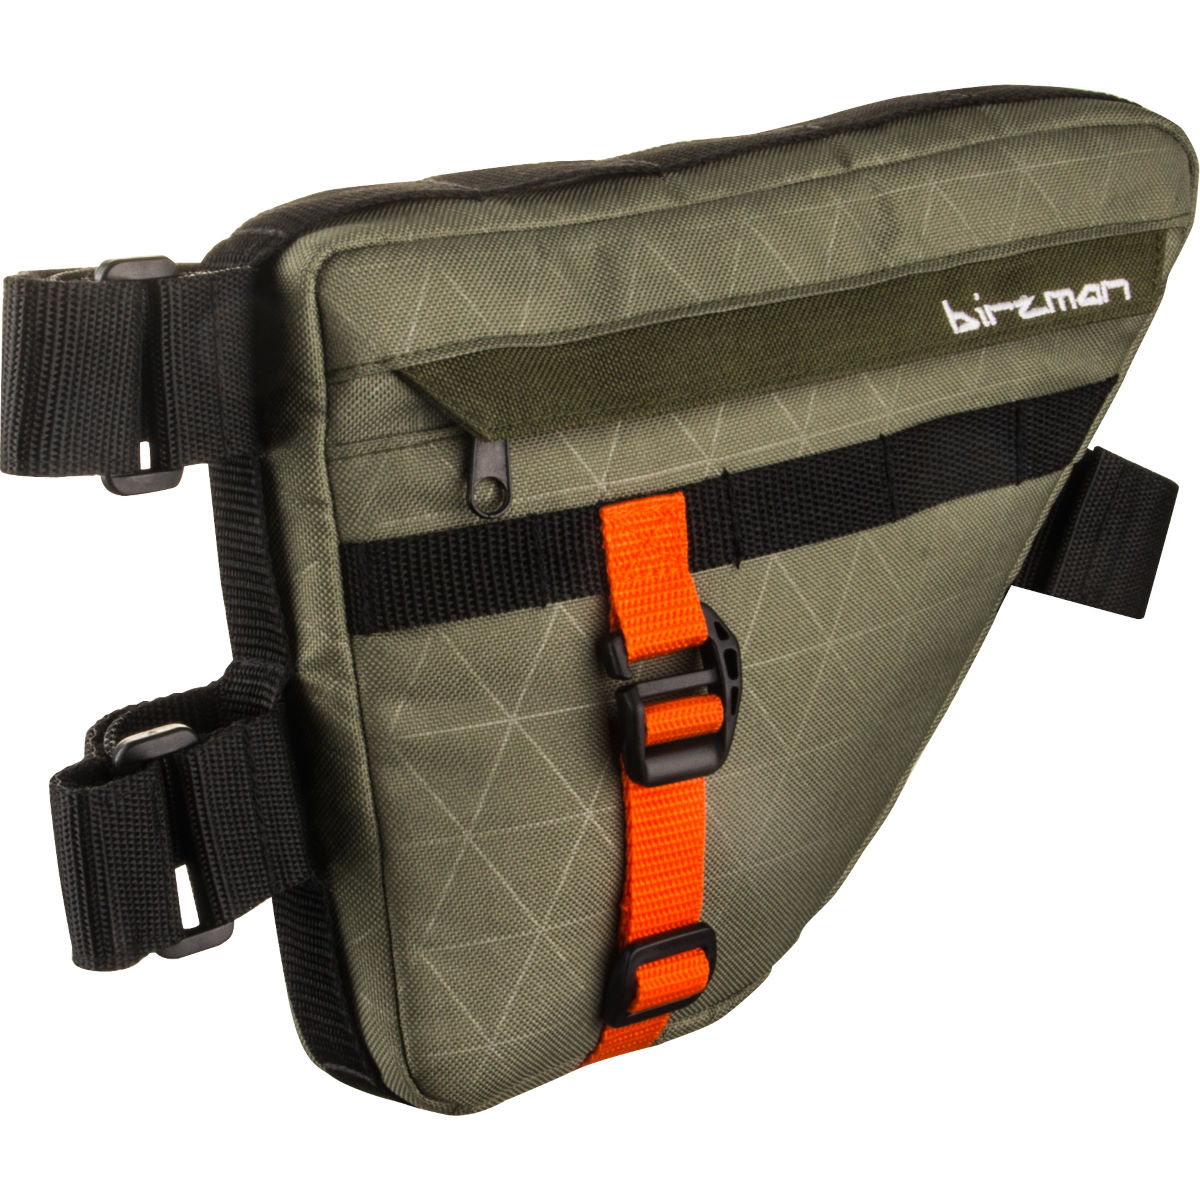 Birzman Packman Travel Frame Pack - Satellite - Bolsas de cuadro